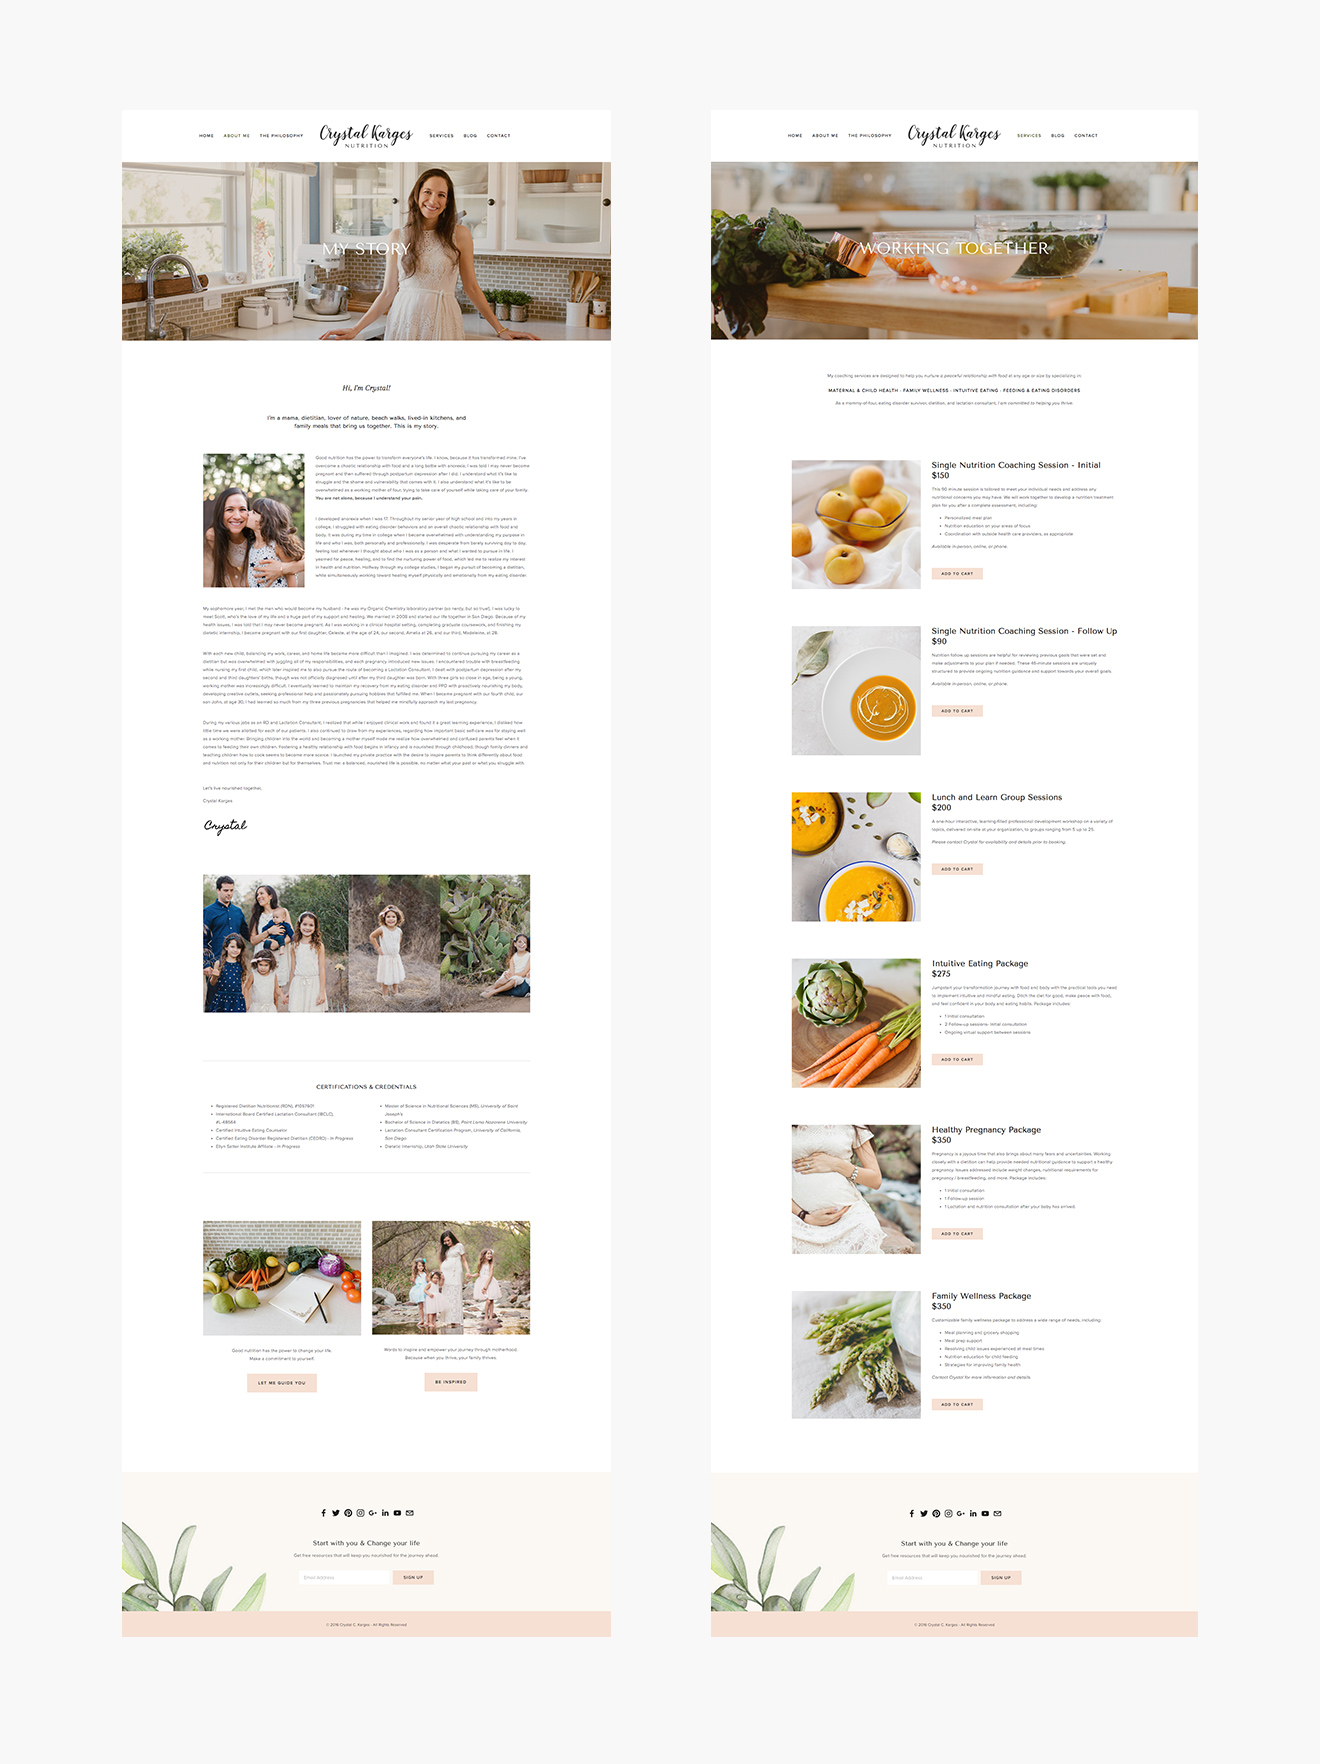 Crystal Karges Nutrition Web Design by LR Creative